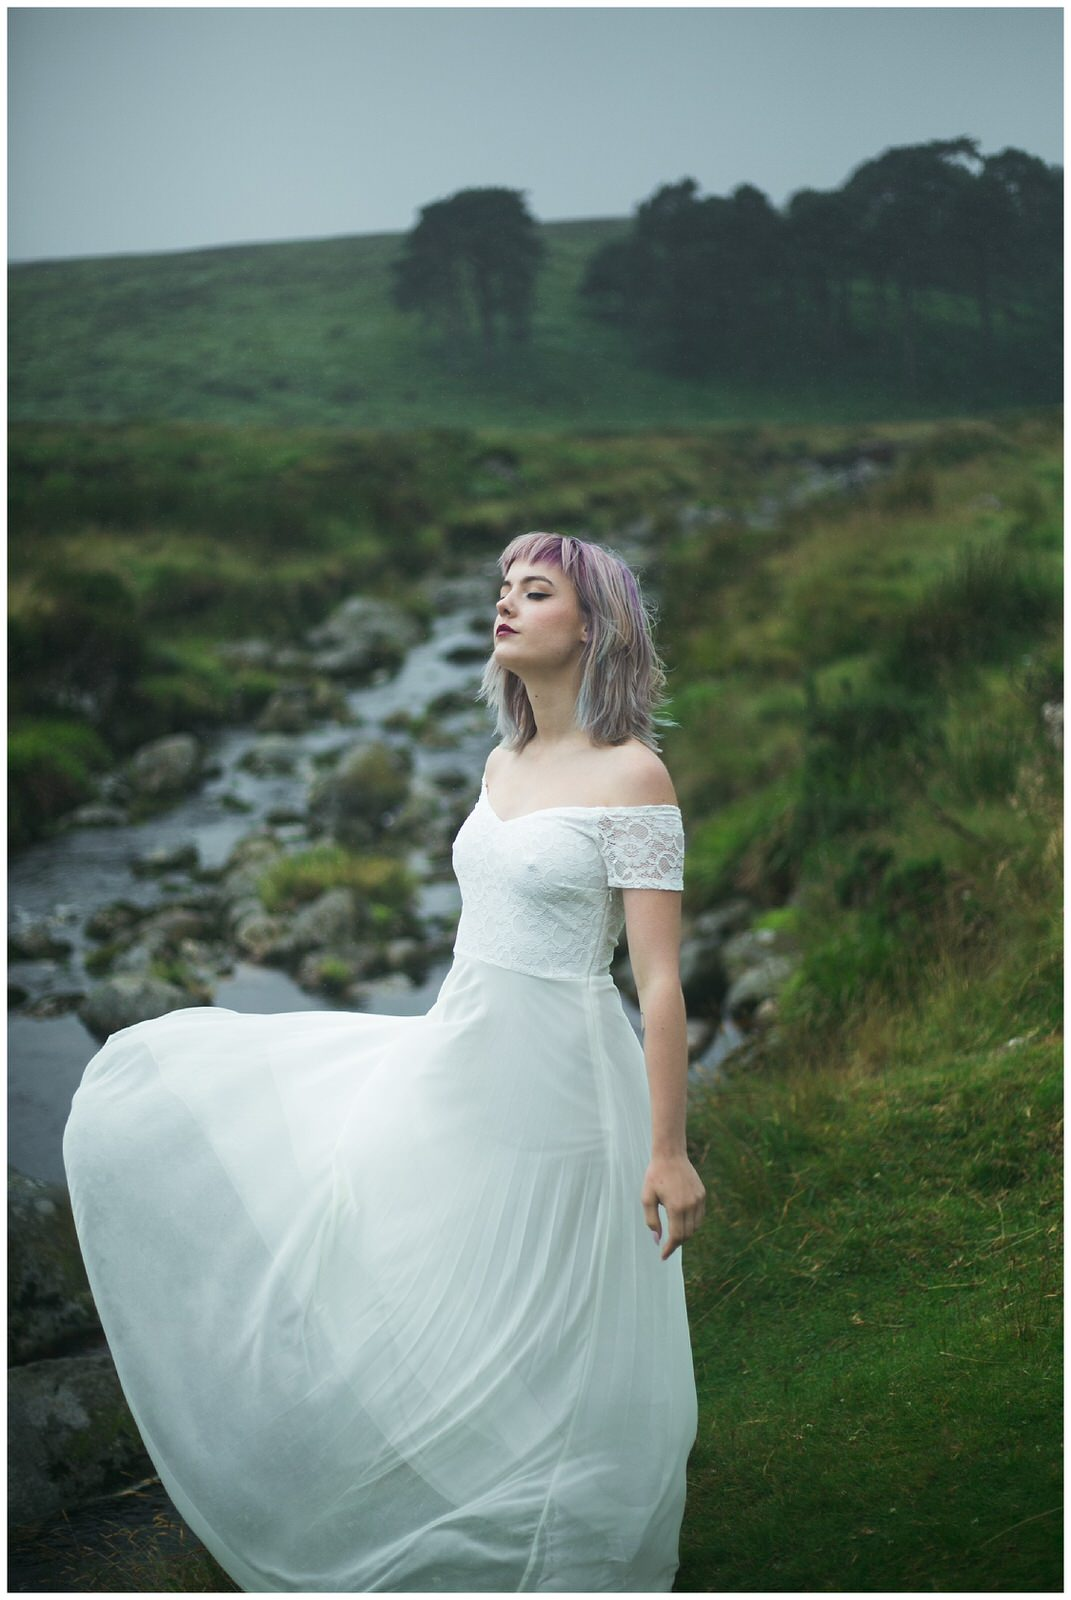 Alternative styled wedding photography Shoot in Wicklow Ireland